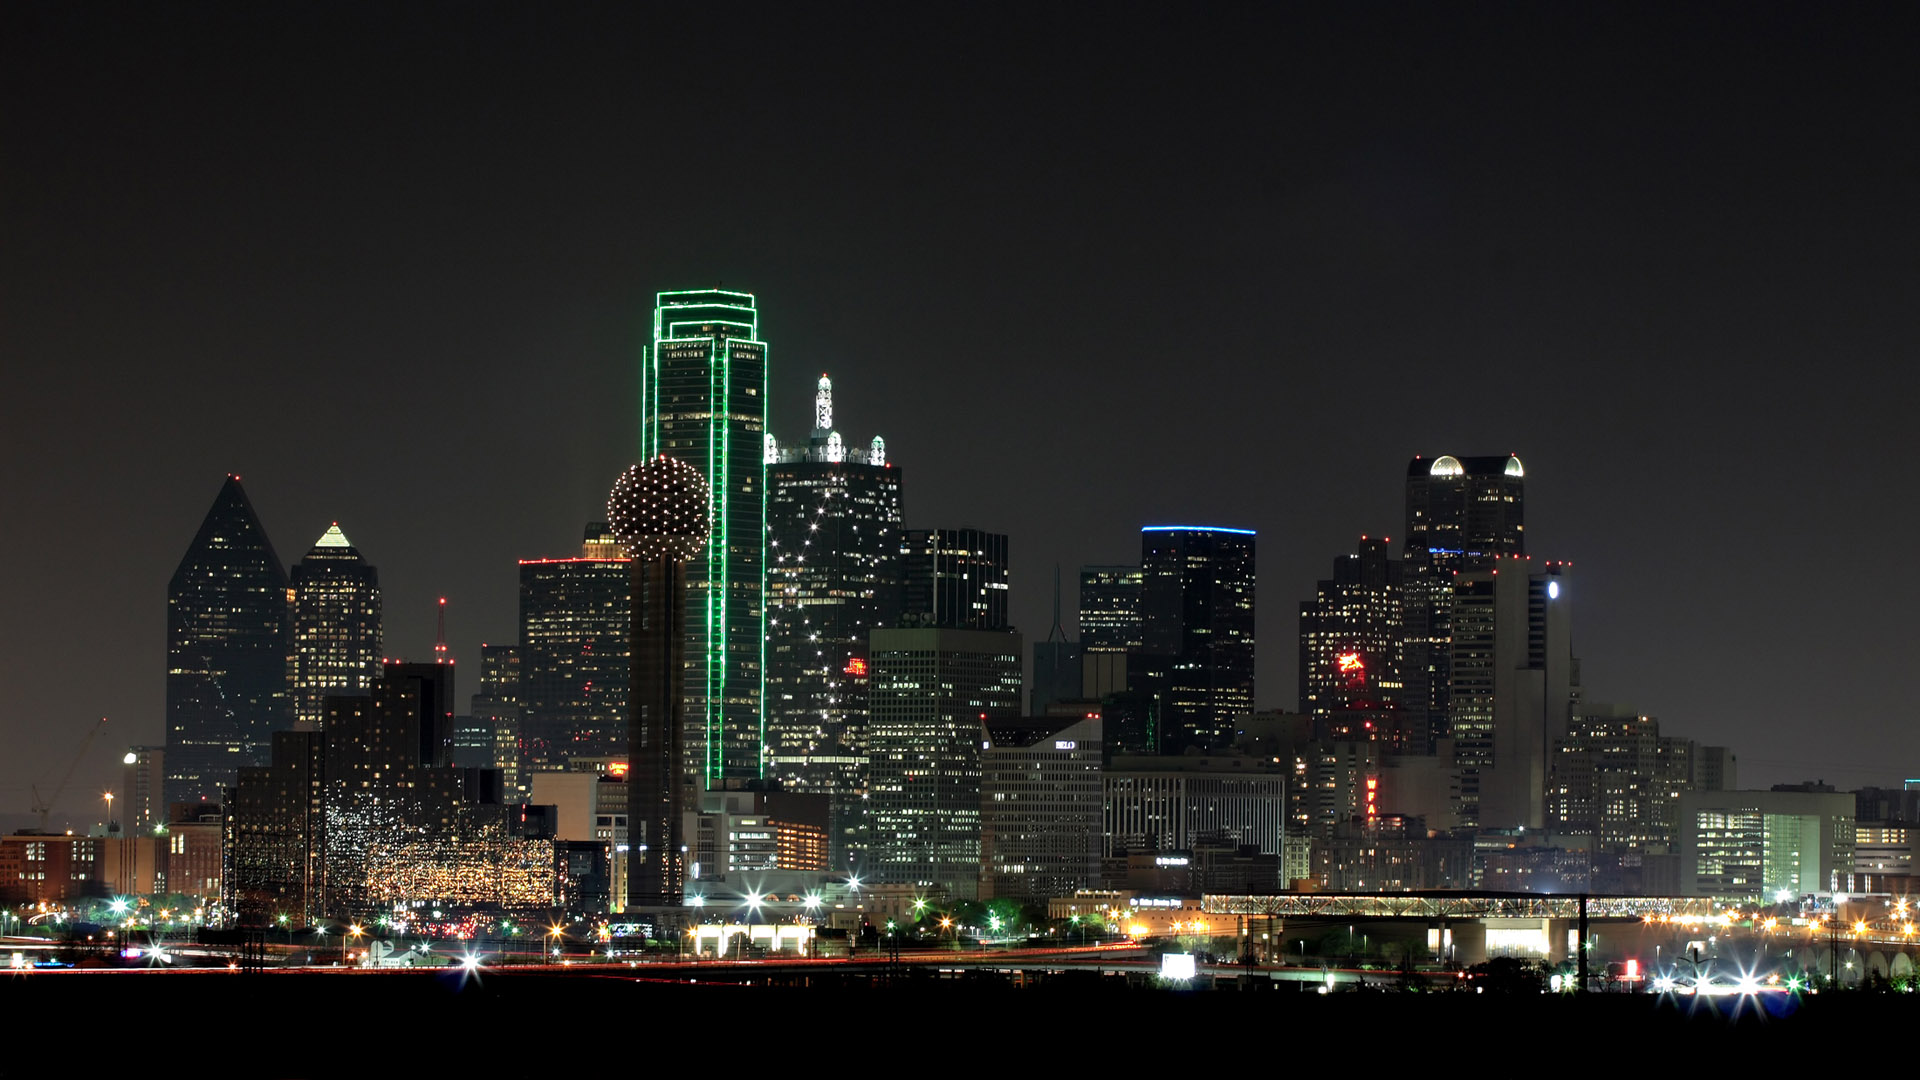 Dallas The best lighting design stores in Dallas The best lighting design stores in Dallas